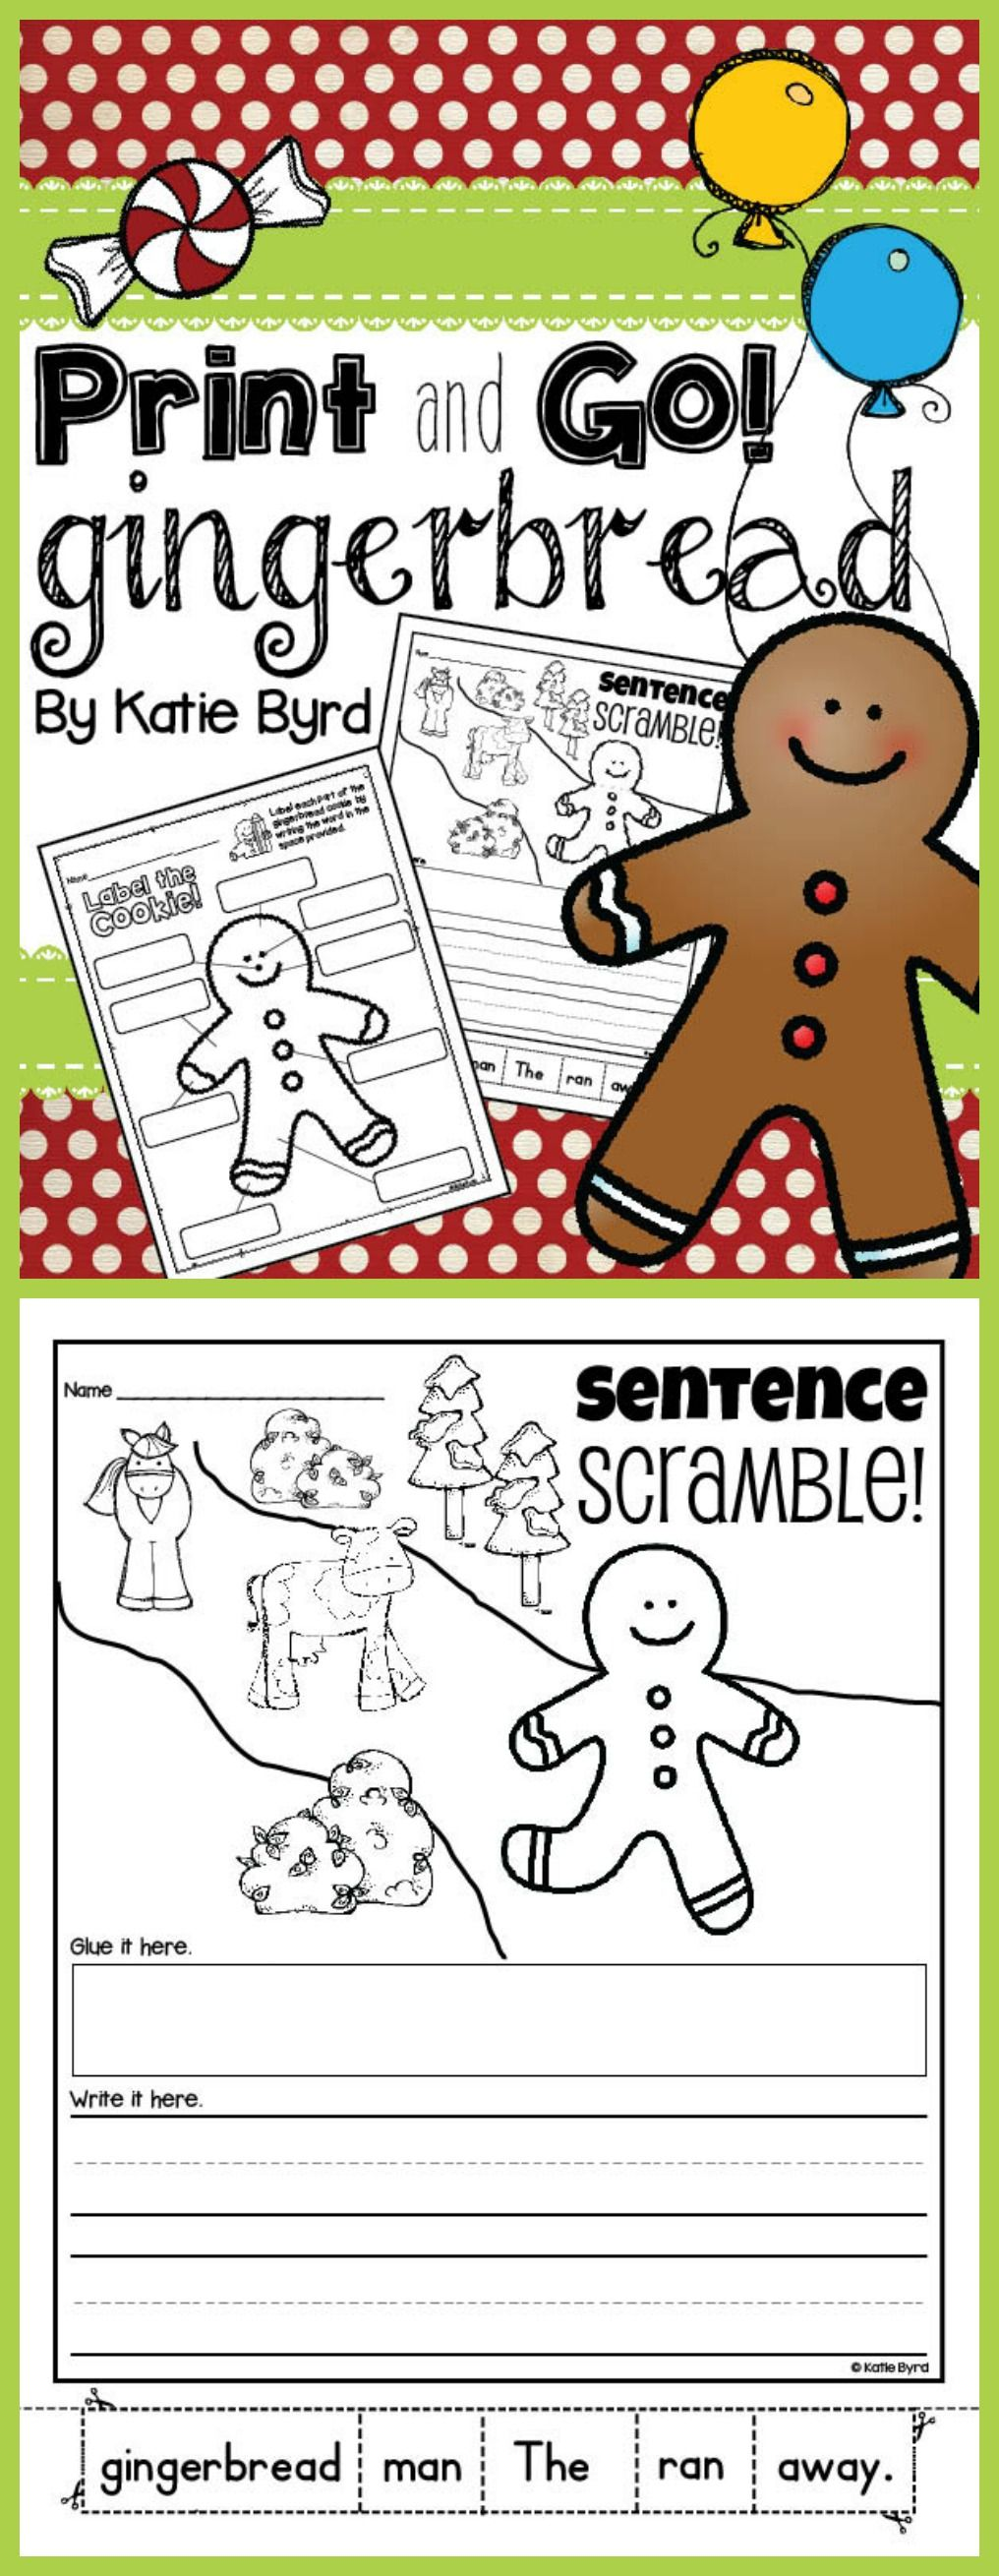 Are You Doing A Gingerbread Unit With Your Class These Practice Pages Are Perfe Gingerbread Man Kindergarten Gingerbread Activities Gingerbread Man Activities [ 2619 x 1016 Pixel ]